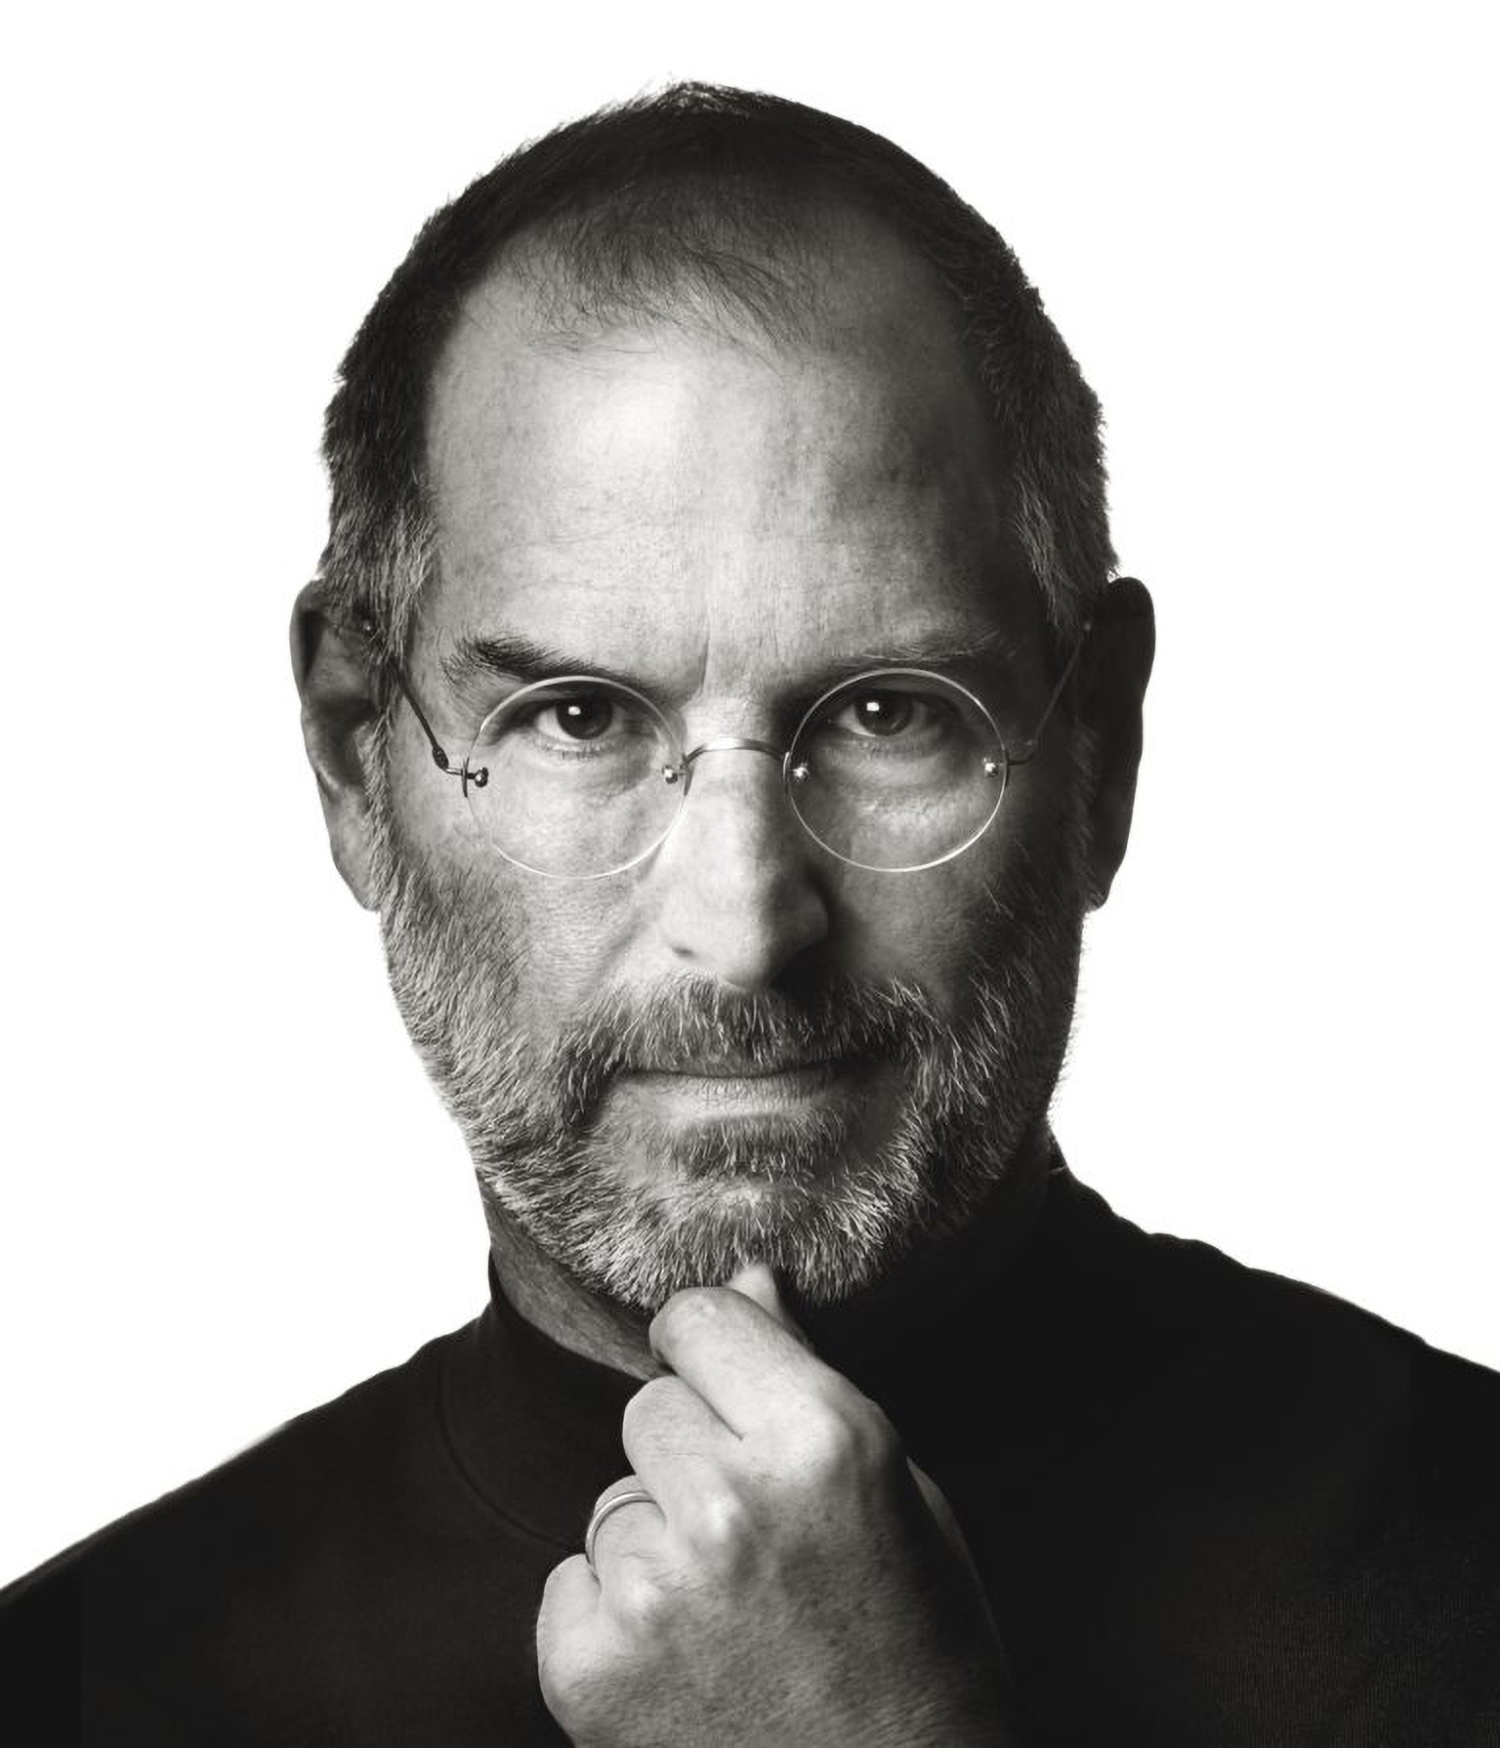 Photo of Steve Jobs by Albert Watson